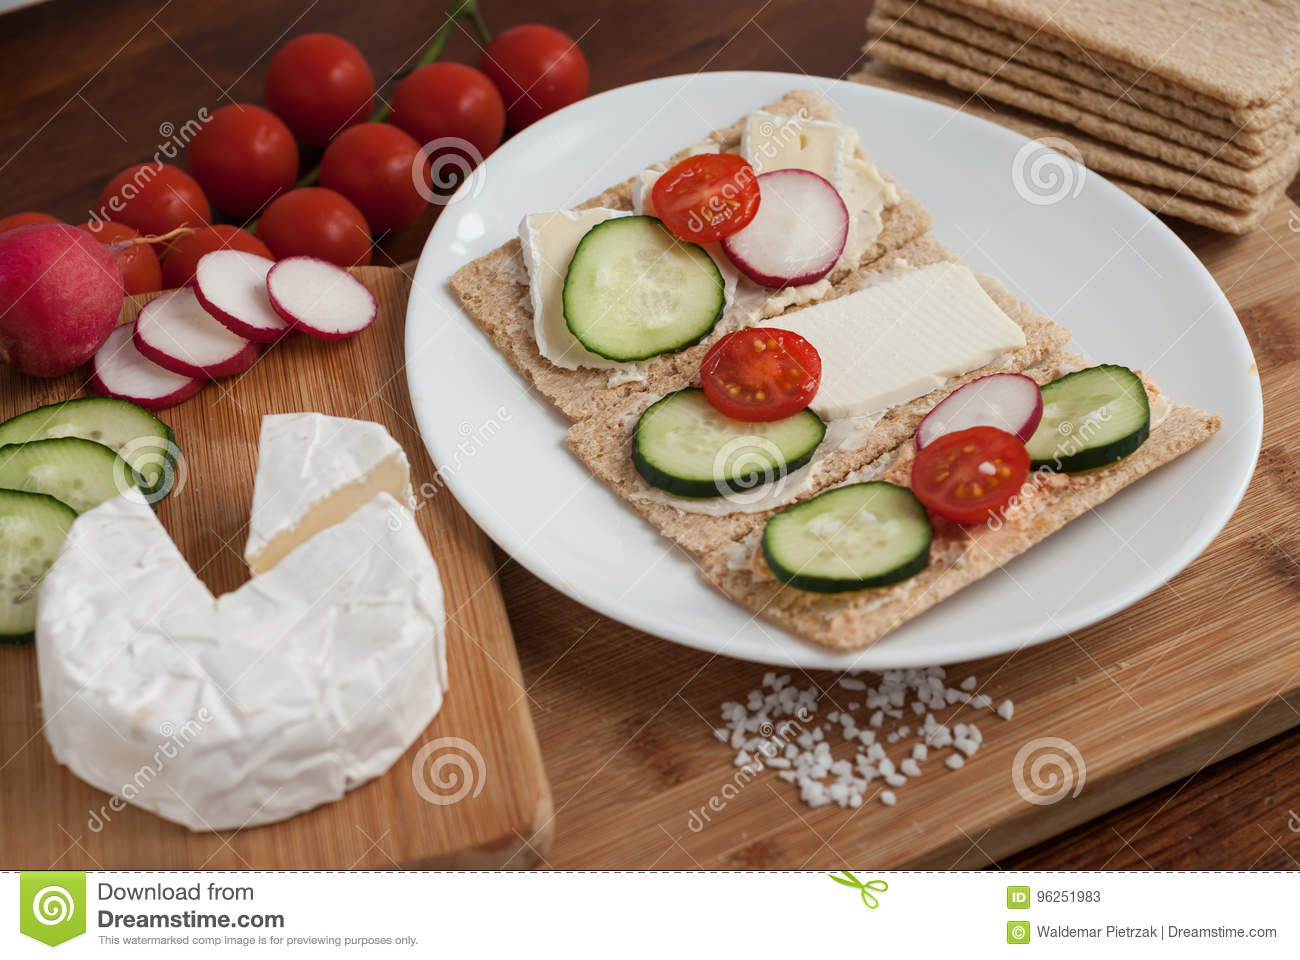 Crunchy cereal bread with vegetables